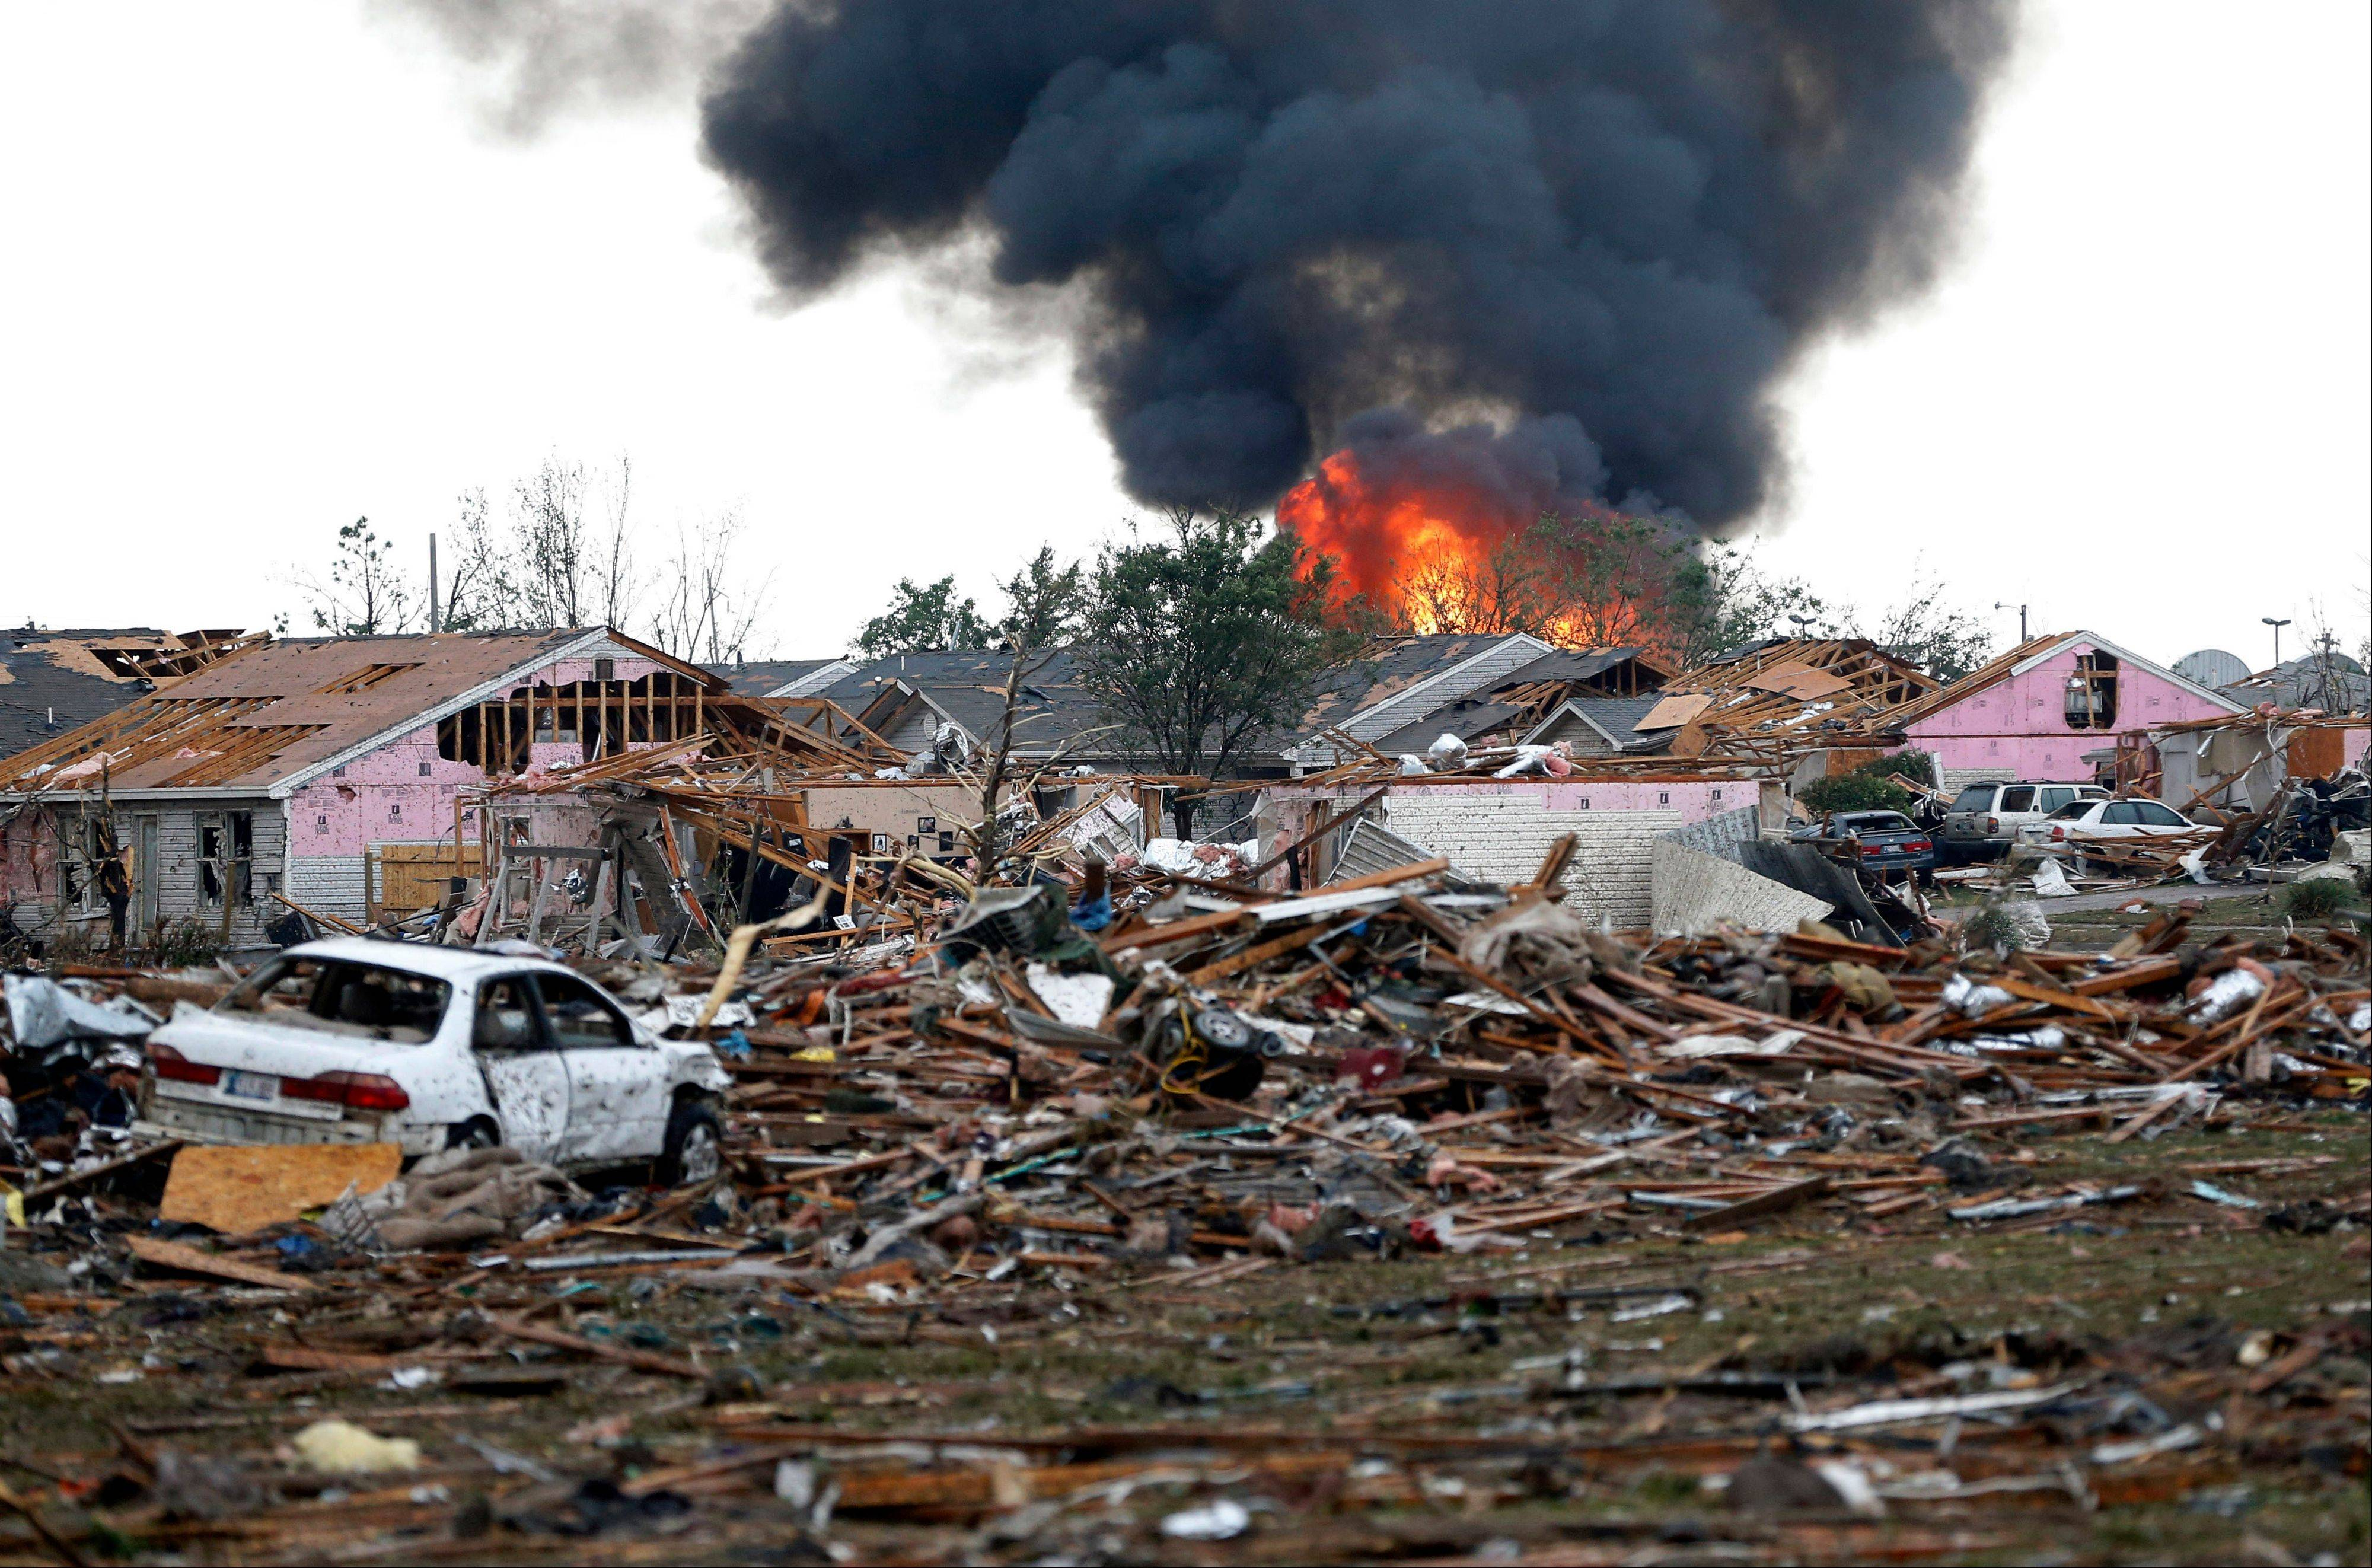 A fire burns in the Tower Plaza Addition in Moore, Okla., after a tornado as much as a mile wide with winds up to 200 mph roared through the Oklahoma City suburbs Monday, flattening entire neighborhoods, setting buildings on fire and landing a direct blow on an elementary school.